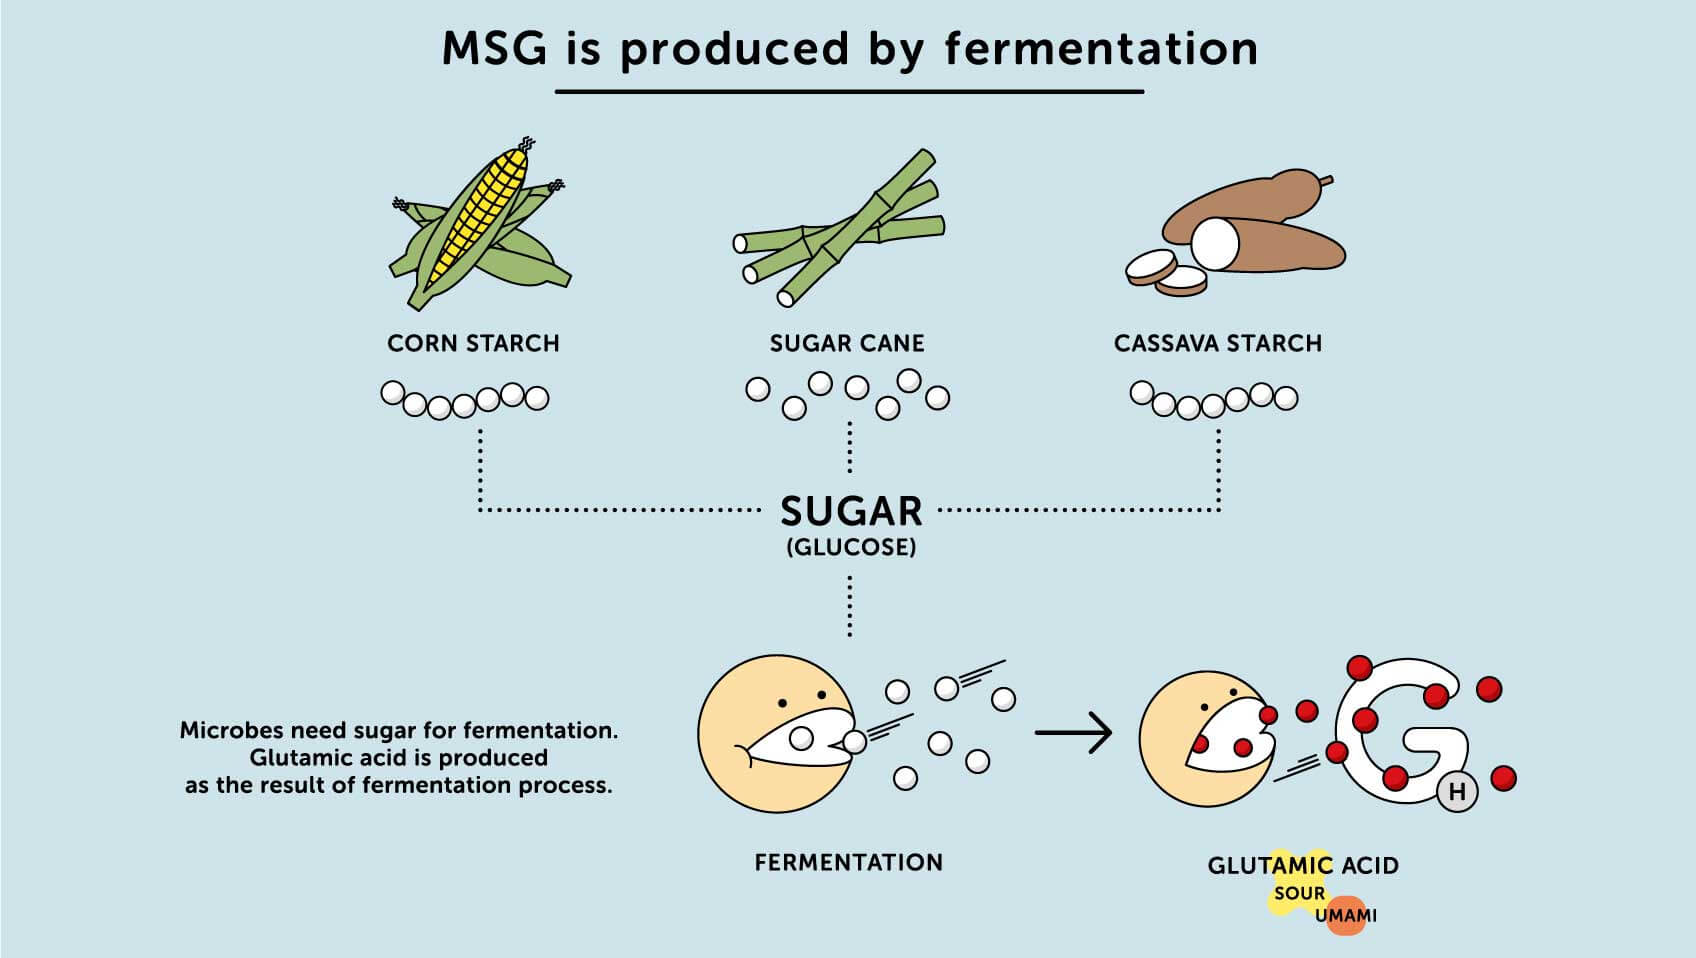 MSG Fermentation By Corn And Cassava Starch